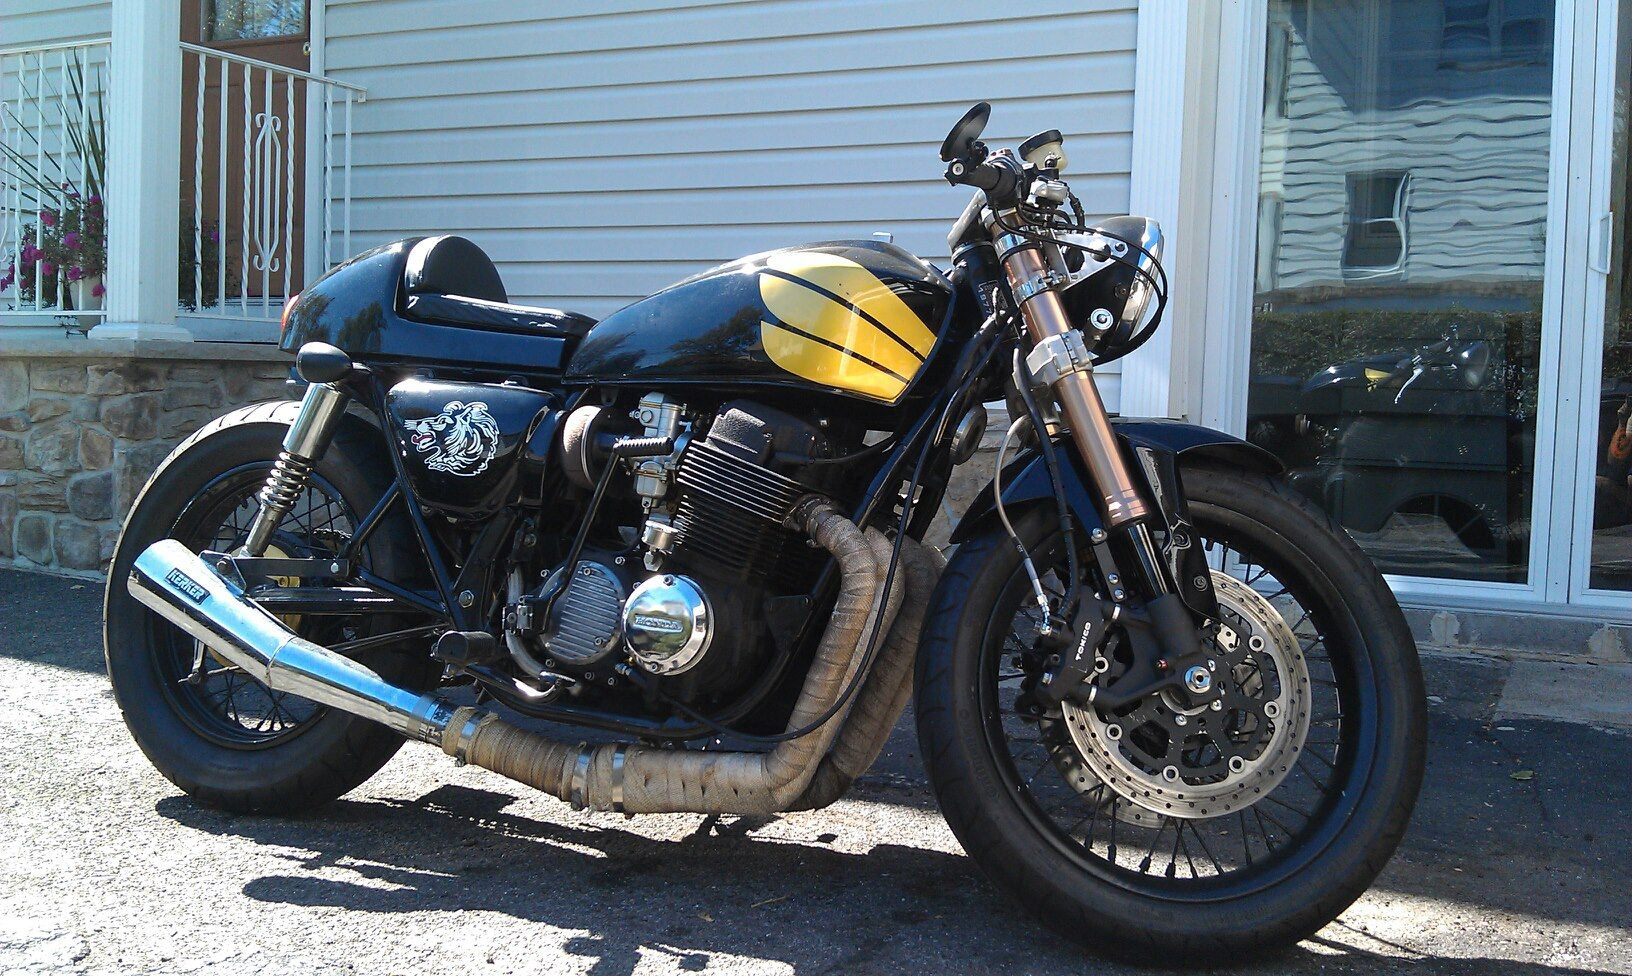 It Is A 1977 Cb750 With 2005 Gsxr 1000 Front End Harley Narrow Glide Wheel R1 Master Cylinder Tintop Intake Roc City Cafe Seat 1954 Jeep Willys